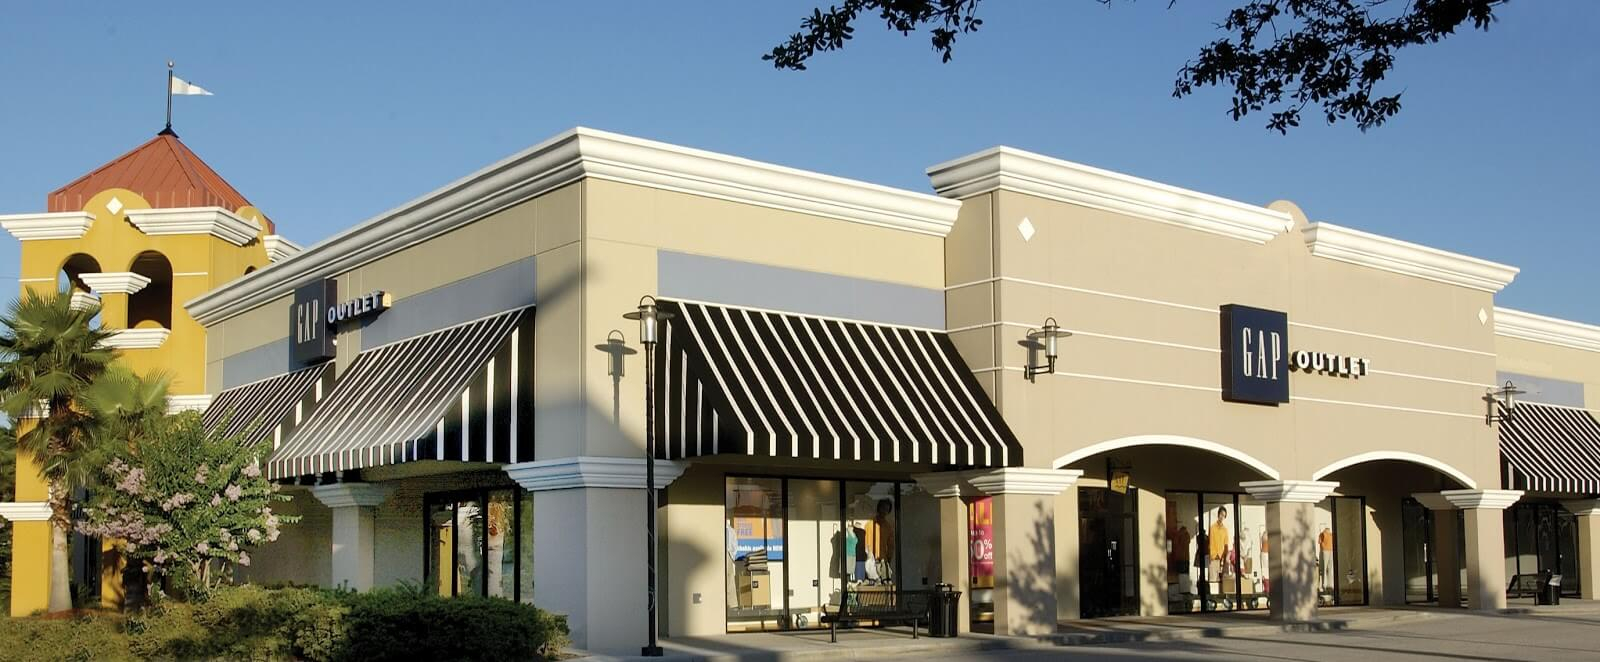 Outlet Lake Buena Vista Factory Stores em Orlando